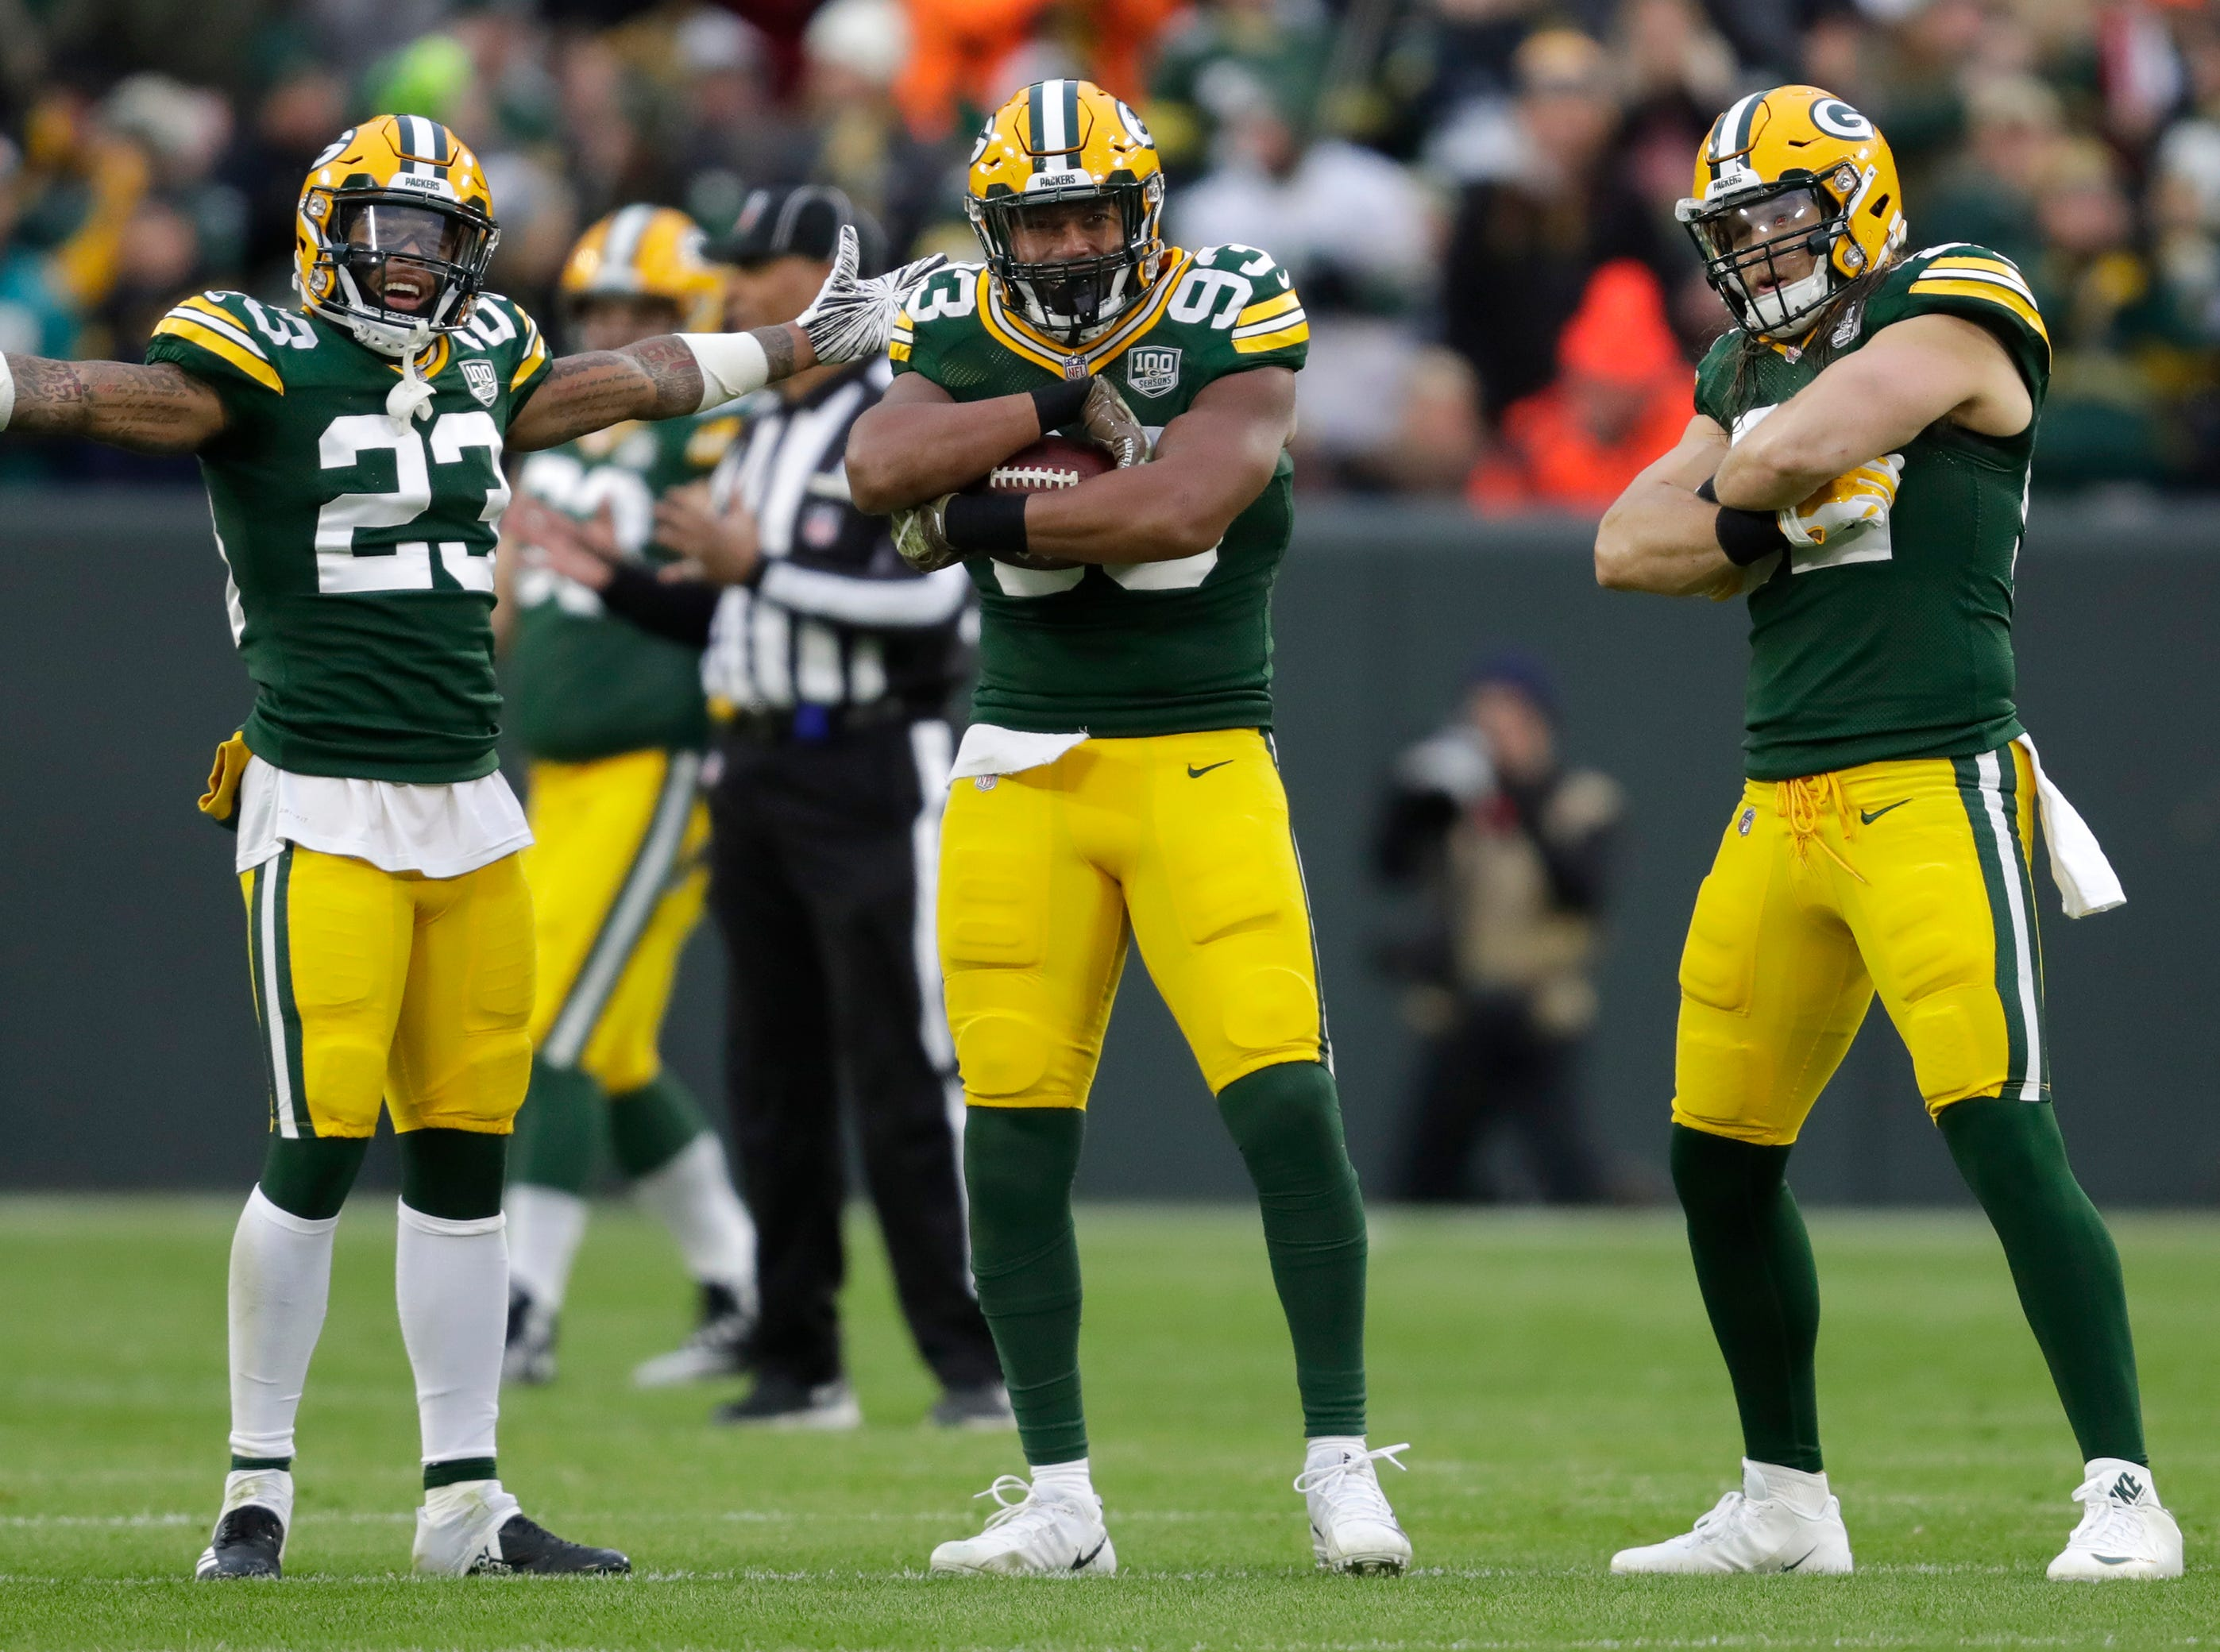 Green Bay Packers linebacker Reggie Gilbert (93) celebrates his fumble recovery with Jaire Alexander (23) and Clay Matthews (52) in the first quarter Sunday, November 11, 2018, Lambeau Field in Green Bay, Wis. 